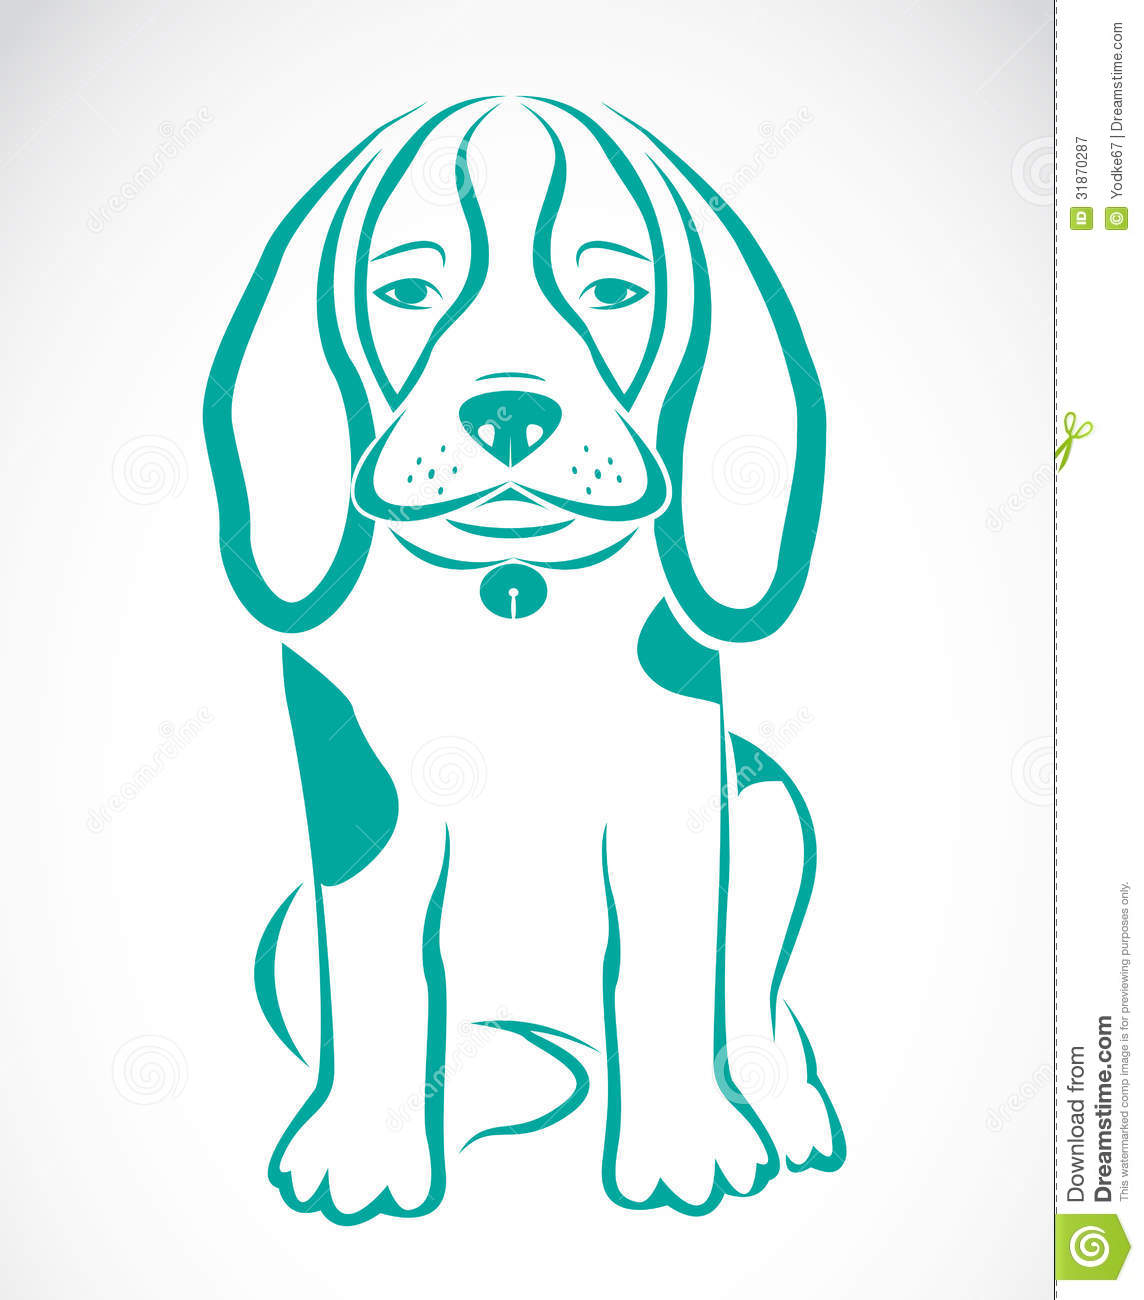 Stock Illustration Emoticon Smiley Doing Presentation Illustration Image46949167 in addition Royalty Free Stock Photos Sun Logo Image14595548 in addition Bunnies Rabbits Easter Photos n 6959132 likewise Royalty Free Stock Image Blue Stripe Background Image7237806 likewise Royalty Free Stock Photography Vector Image Dog Beagle White Background Image31870287. on cute thumbs up